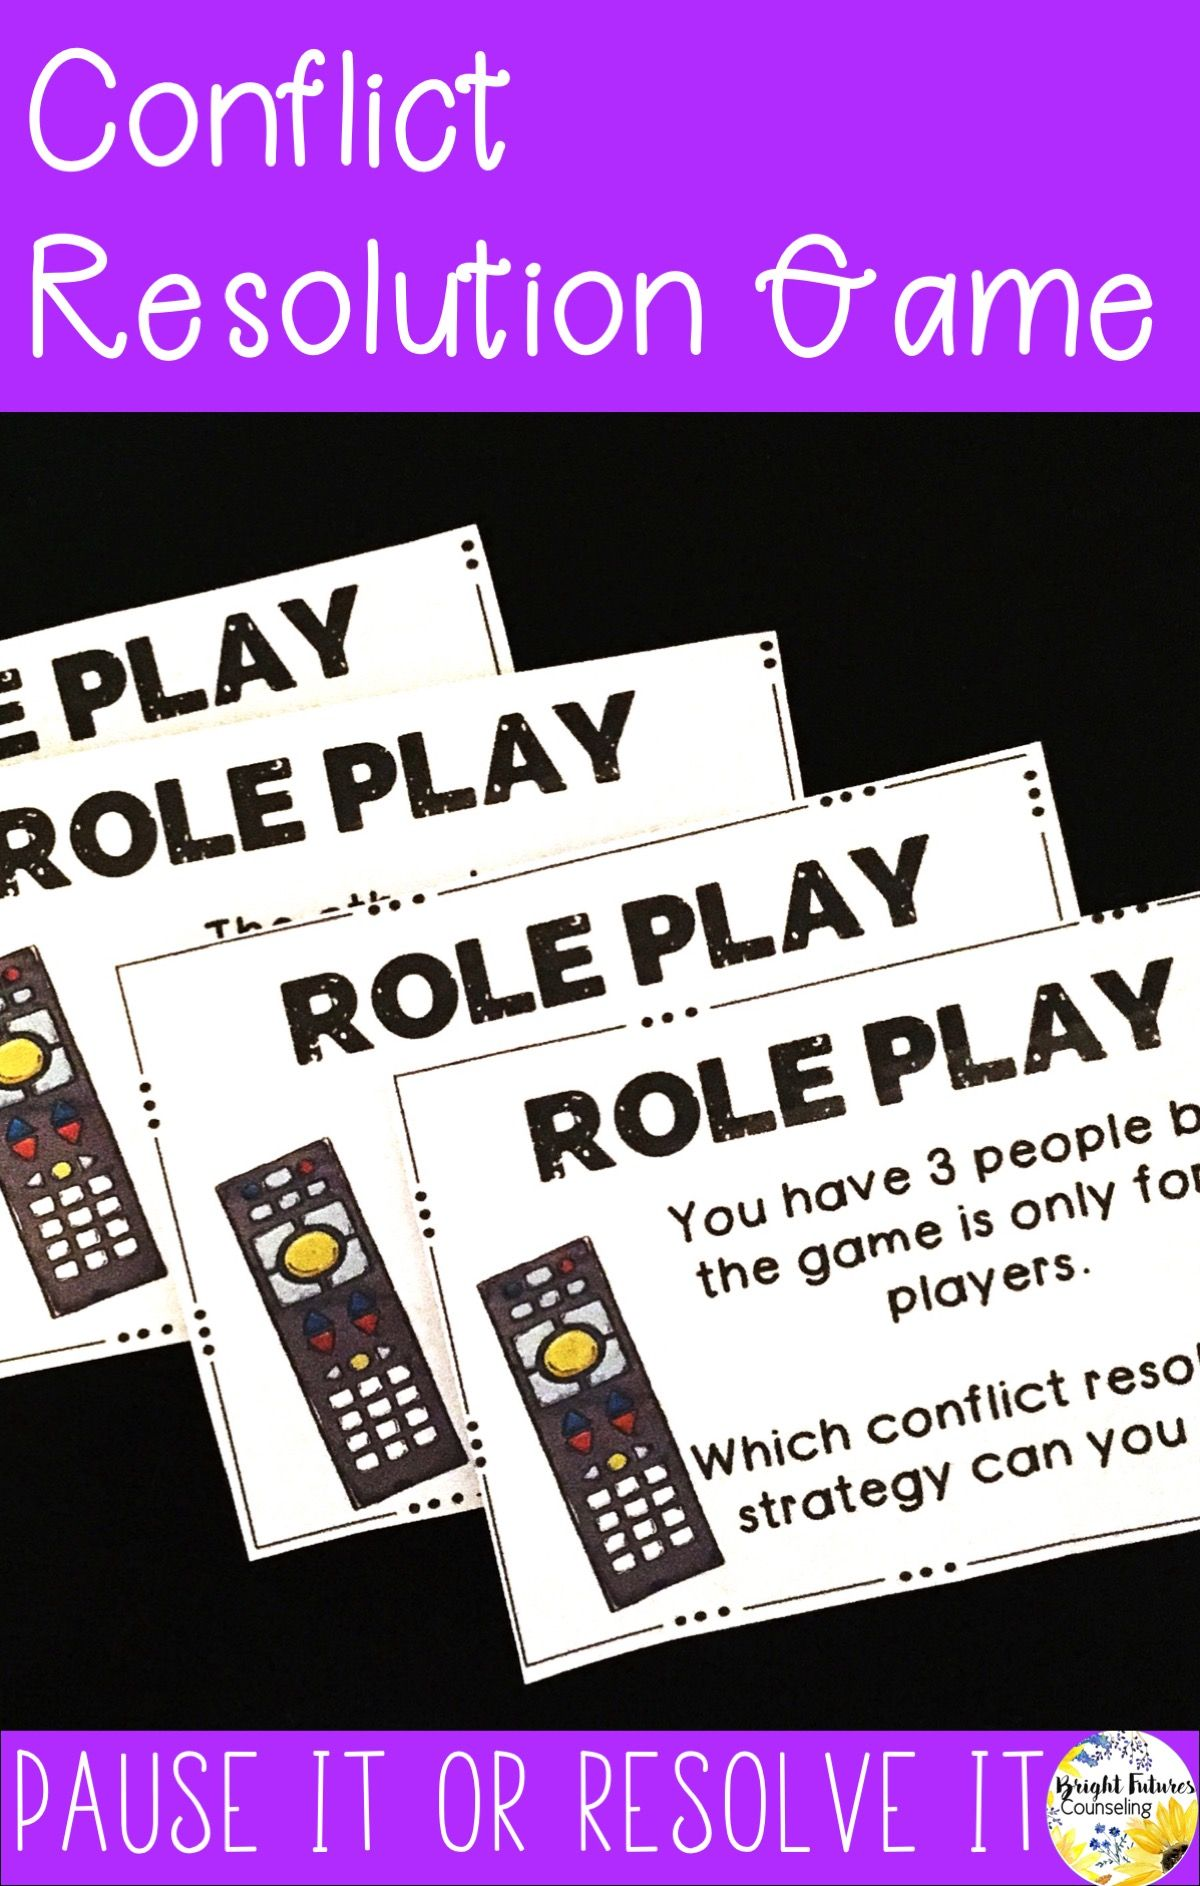 Conflict Resolution Games Pause It And Resolve It School